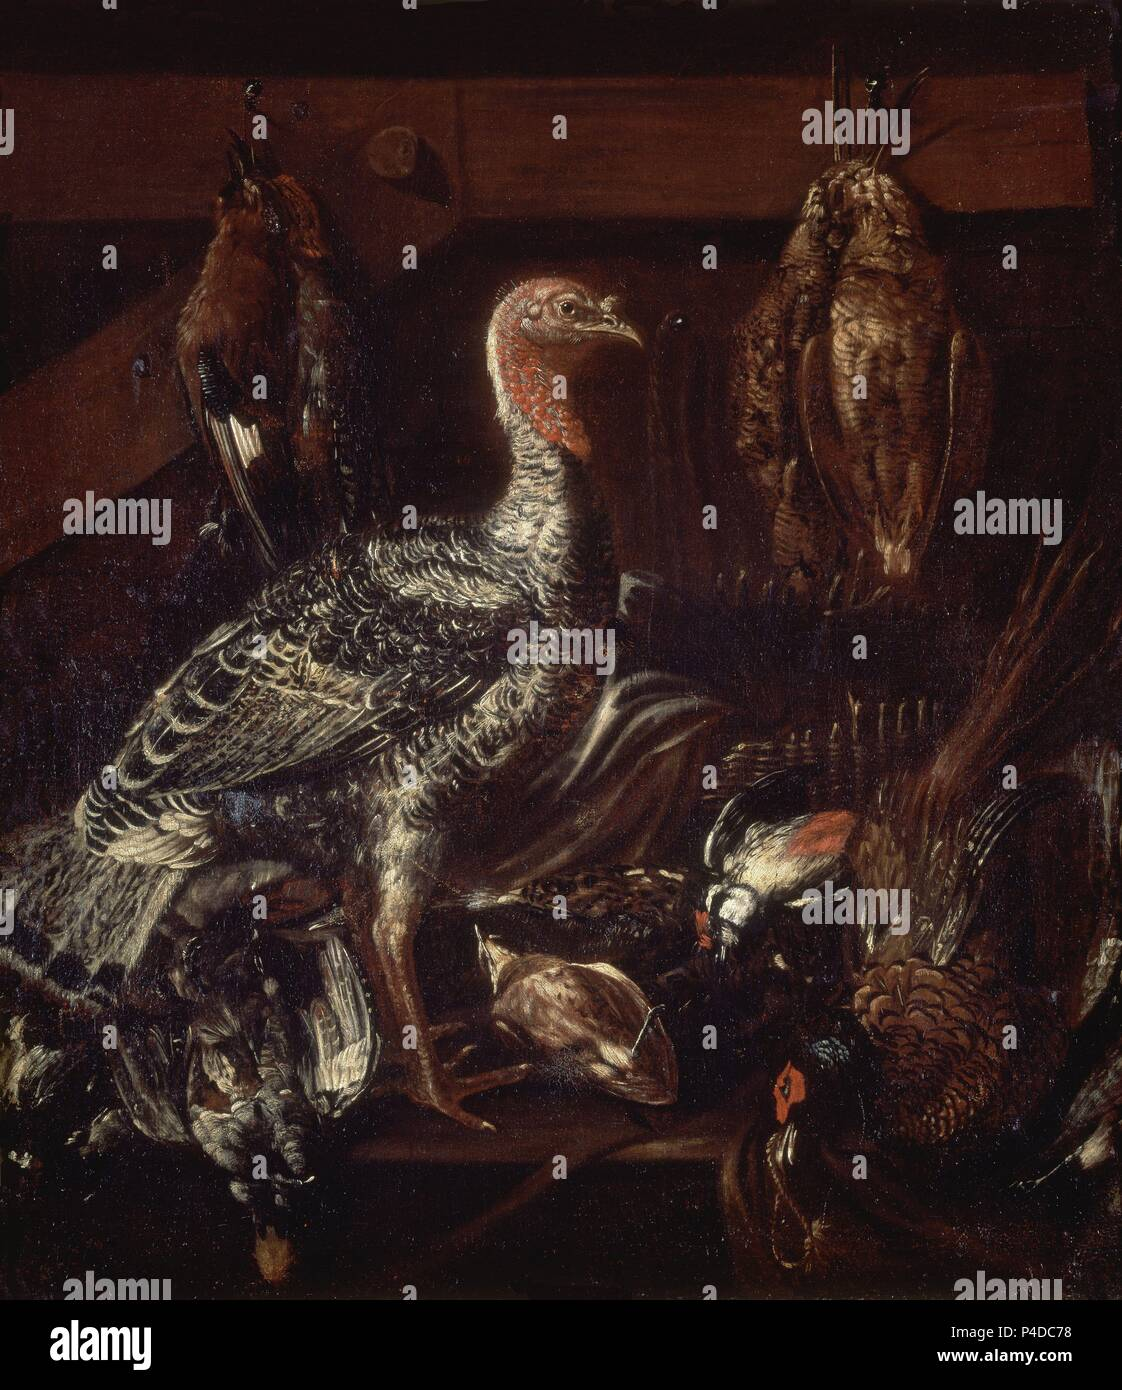 'Still Life with Birds', 17th century, Oil on canvas, 95 x 83 cm, P03115. Author: ITALIAN ANONYMOUS. Location: MUSEO DEL PRADO-PINTURA, MADRID, SPAIN. - Stock Image